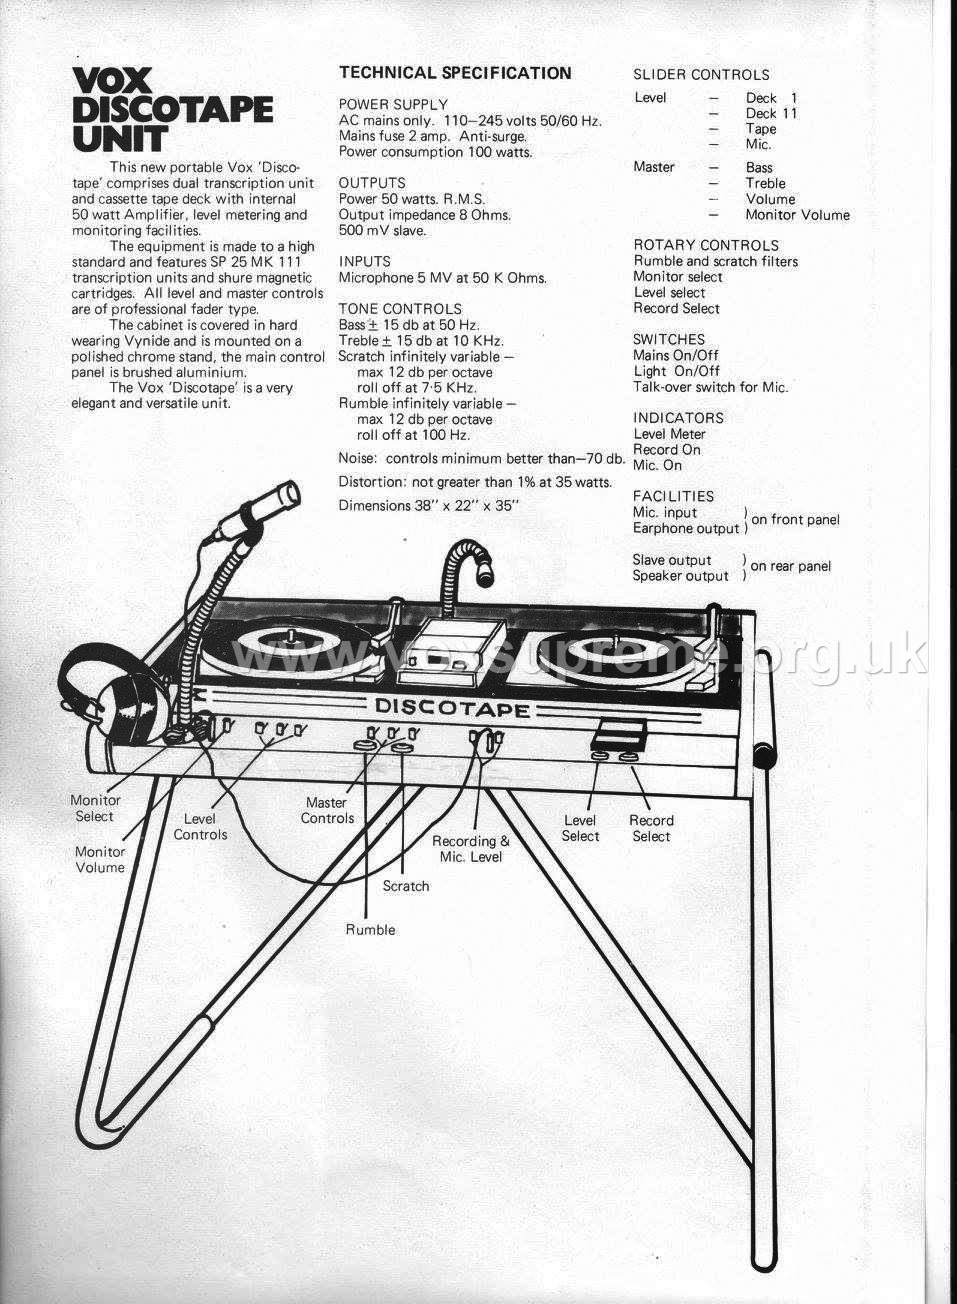 Vox Sound Limited Catalog 1972, the Vox Discotape specifications